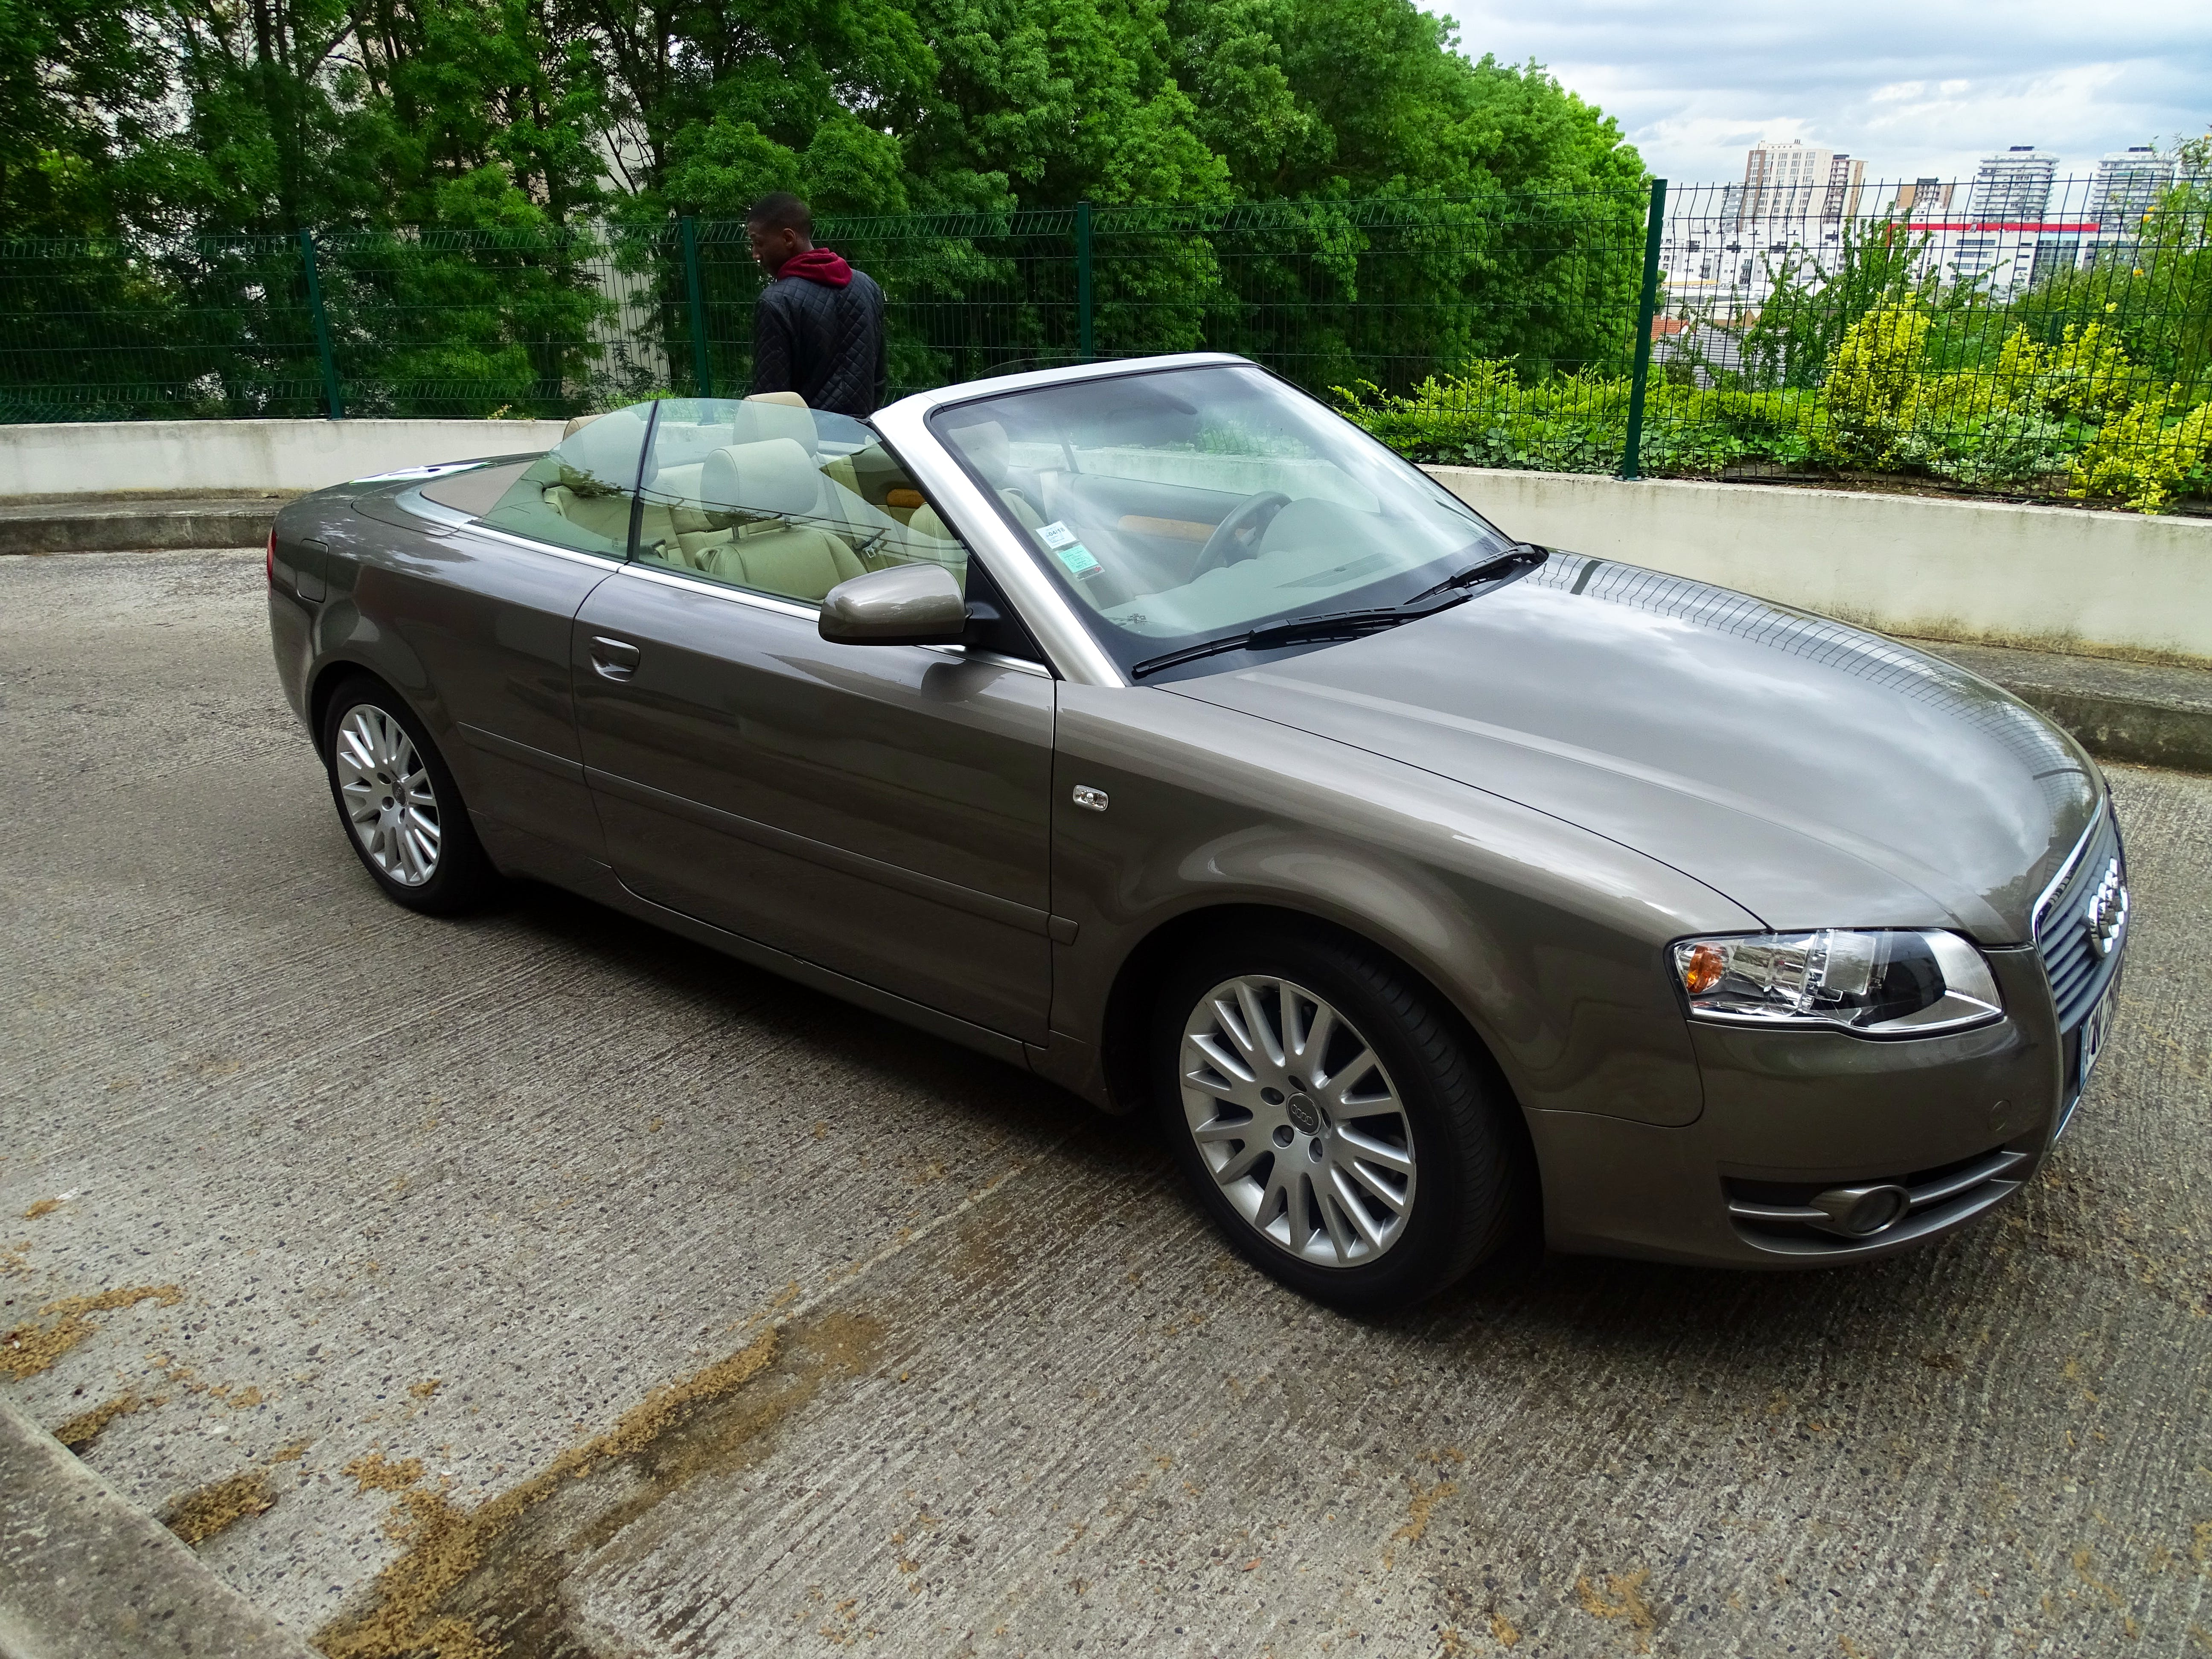 Audi A4 CABRIOLET 2.0 TFSI AMBITION LUXE 200 CV avec Climatisation